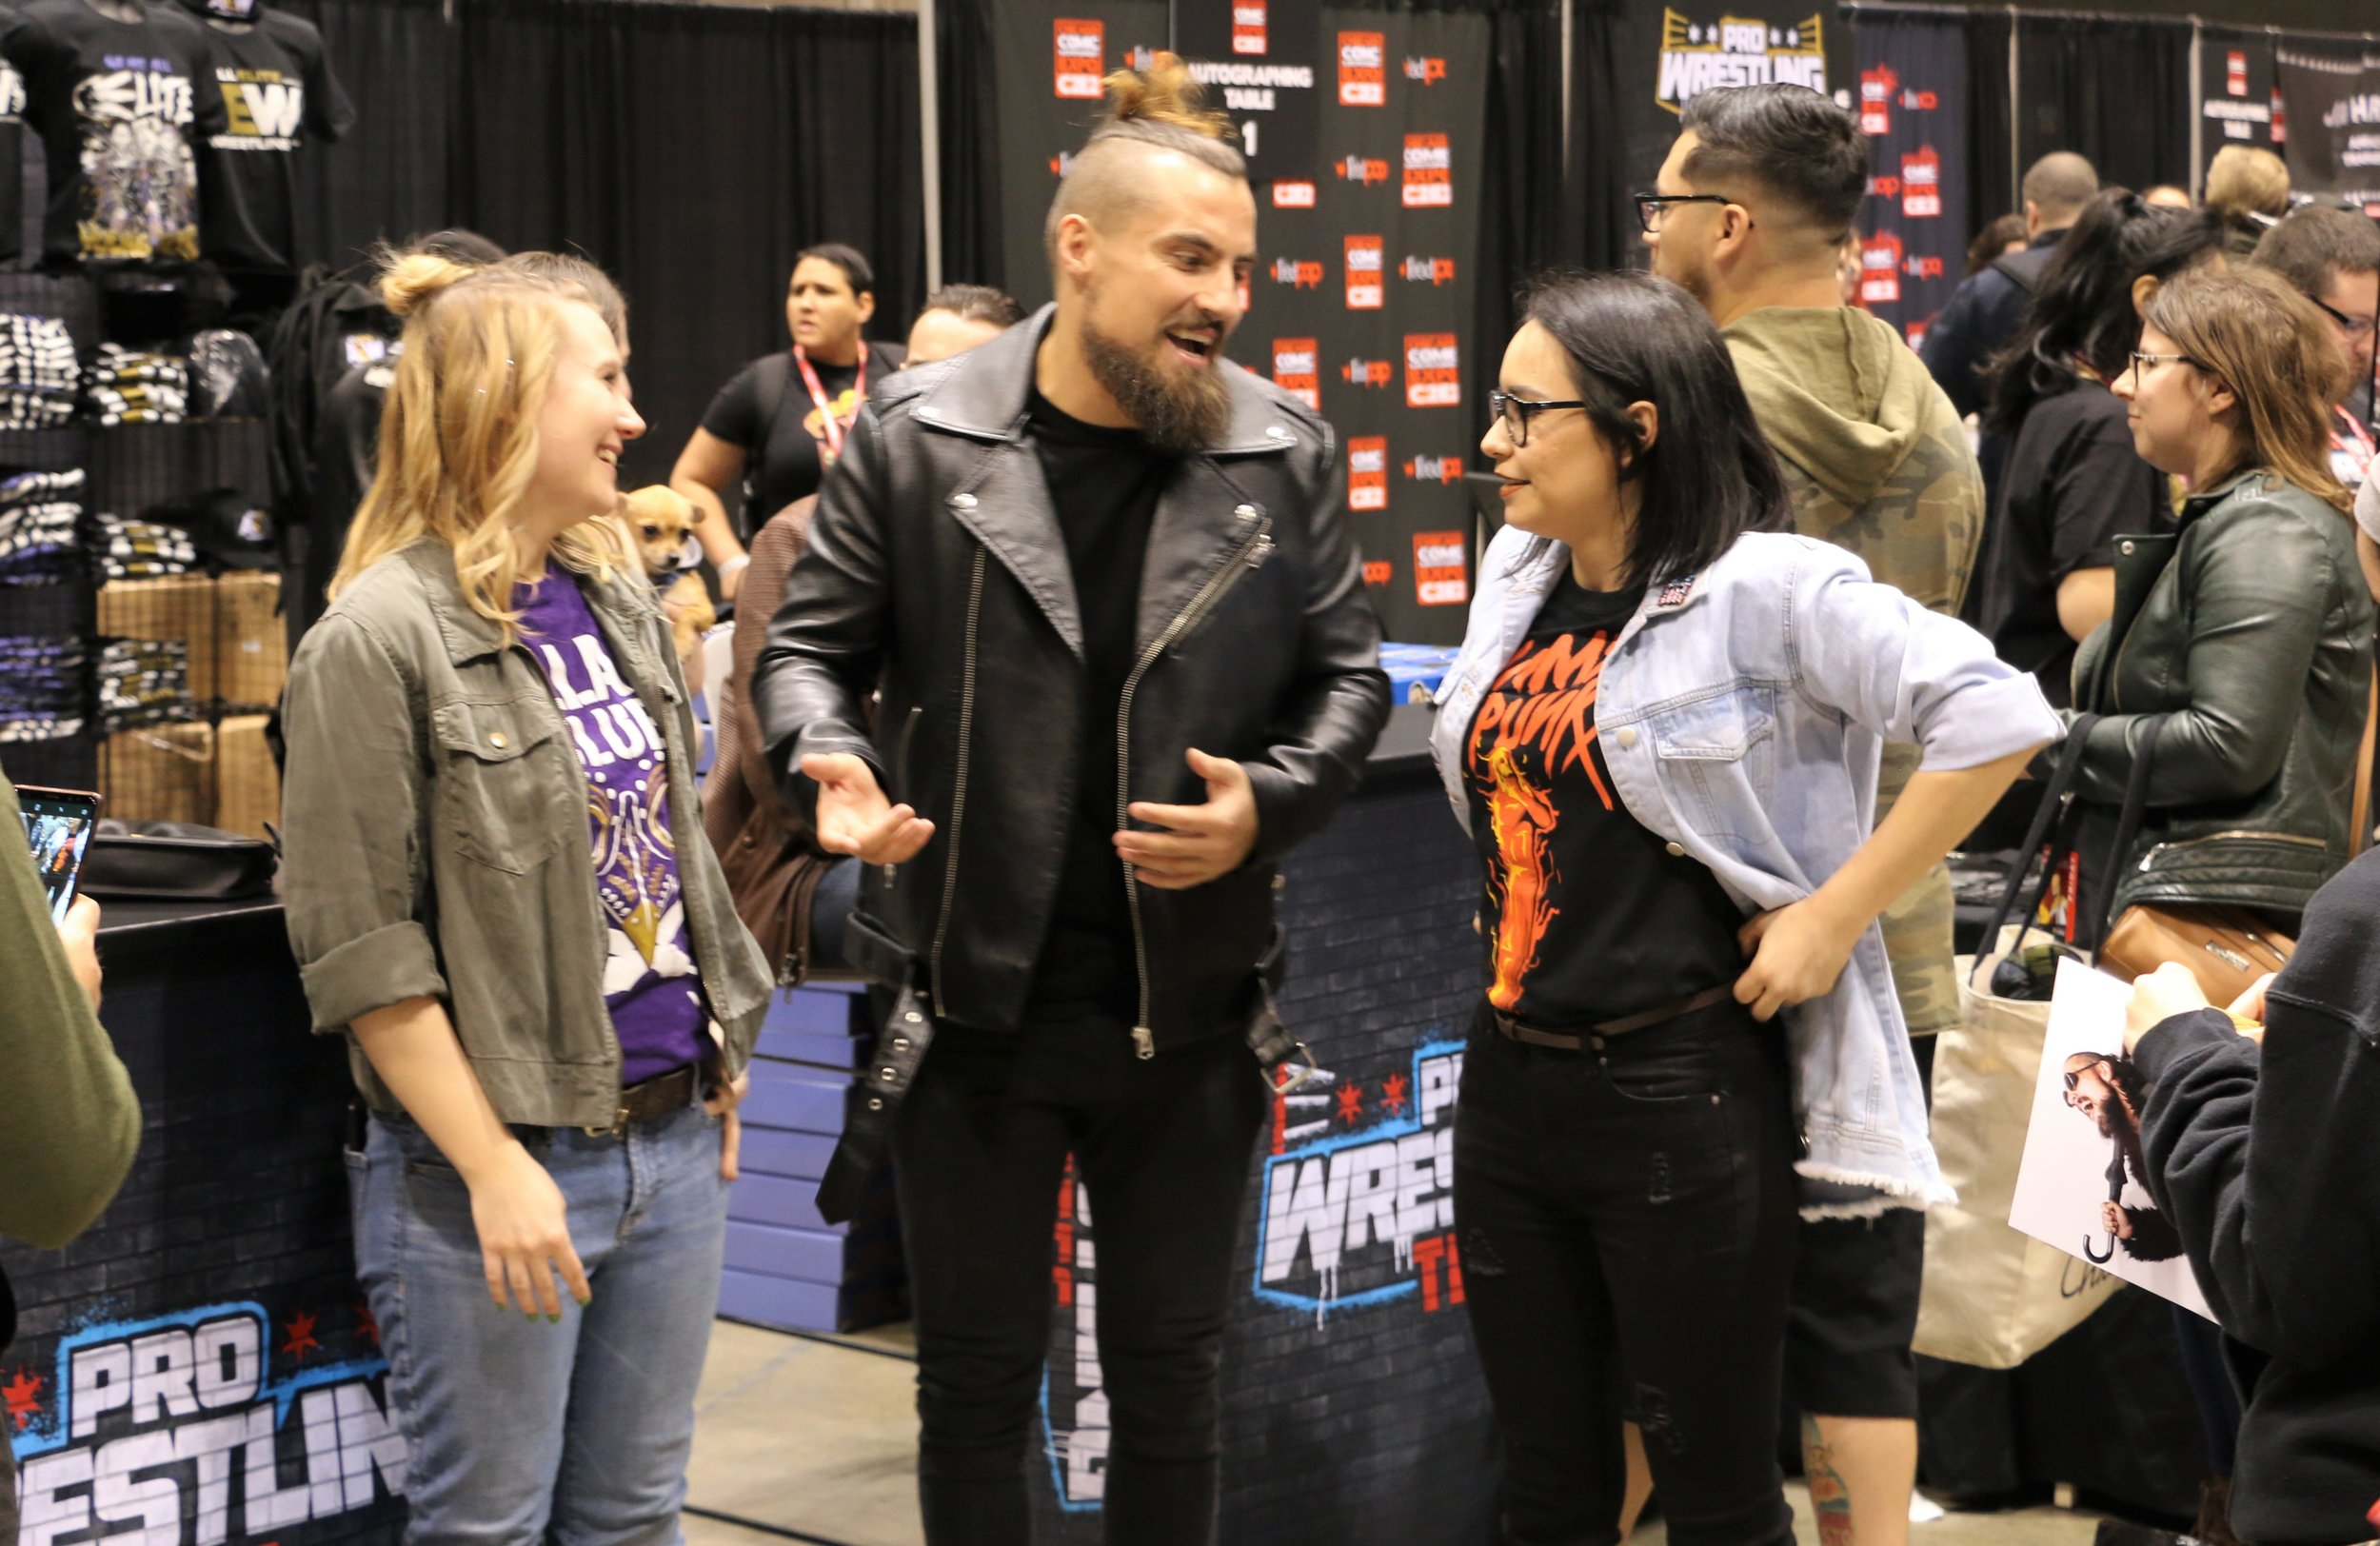 ROH star Marty Scurll, center, talks with fans at Pro Wrestling Tees booth.